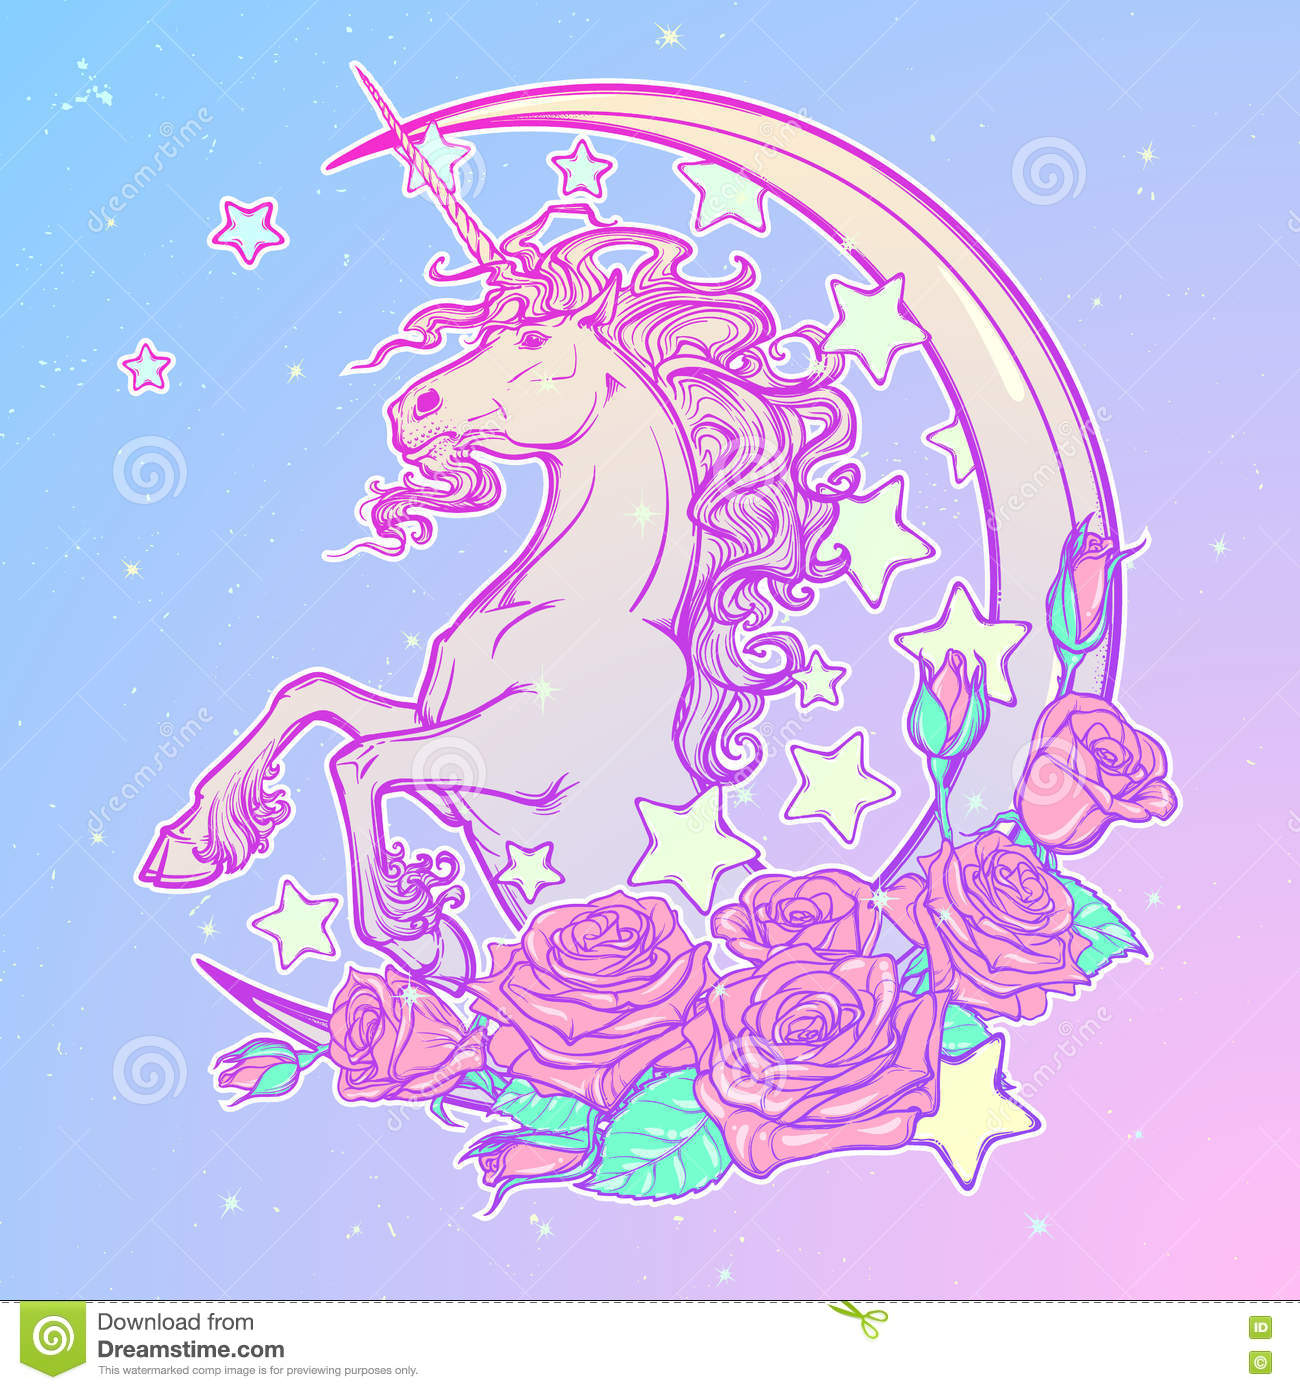 Pastel Goth Unicorn With Crescent Stars And Roses Greeting Card ... be84d89e9